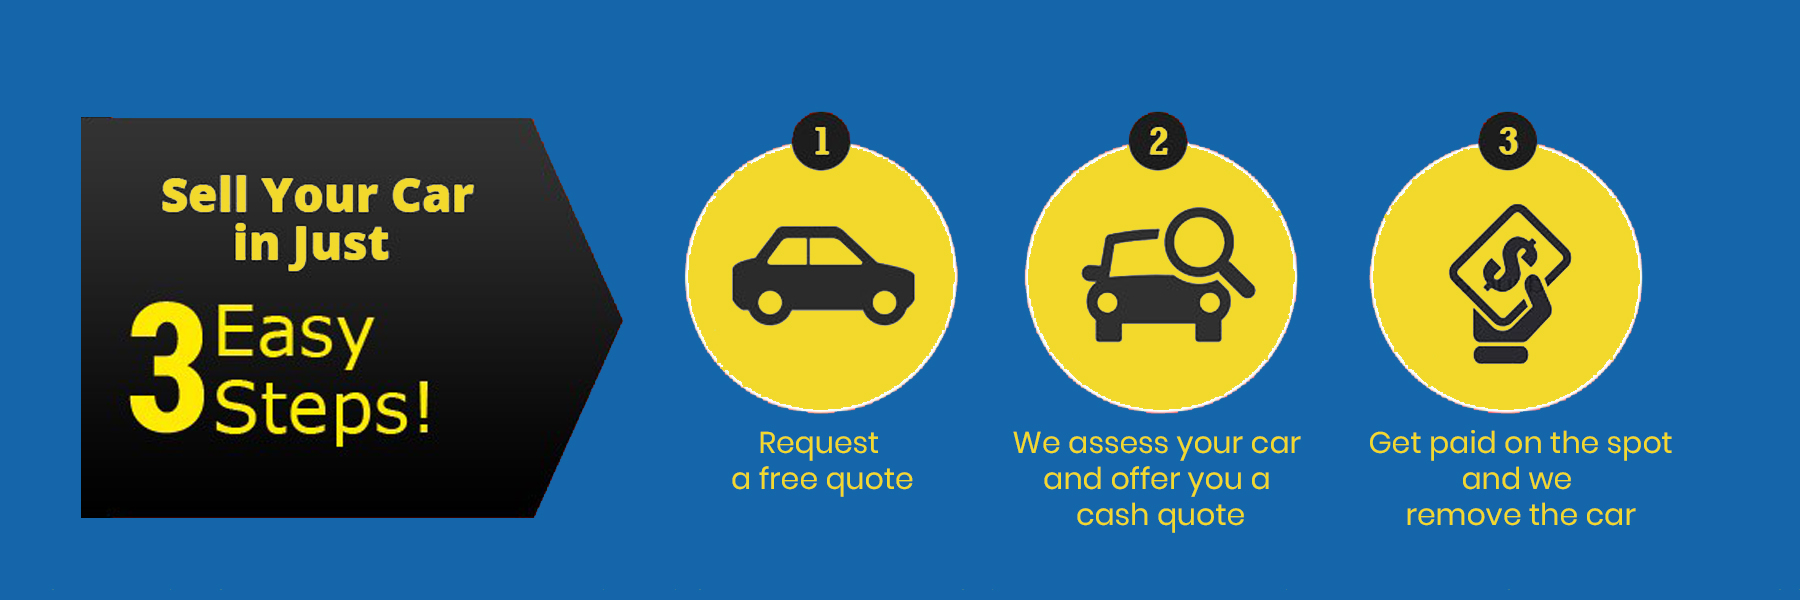 Sell Your Car In 3 Easy Steps - Advance Car Removal